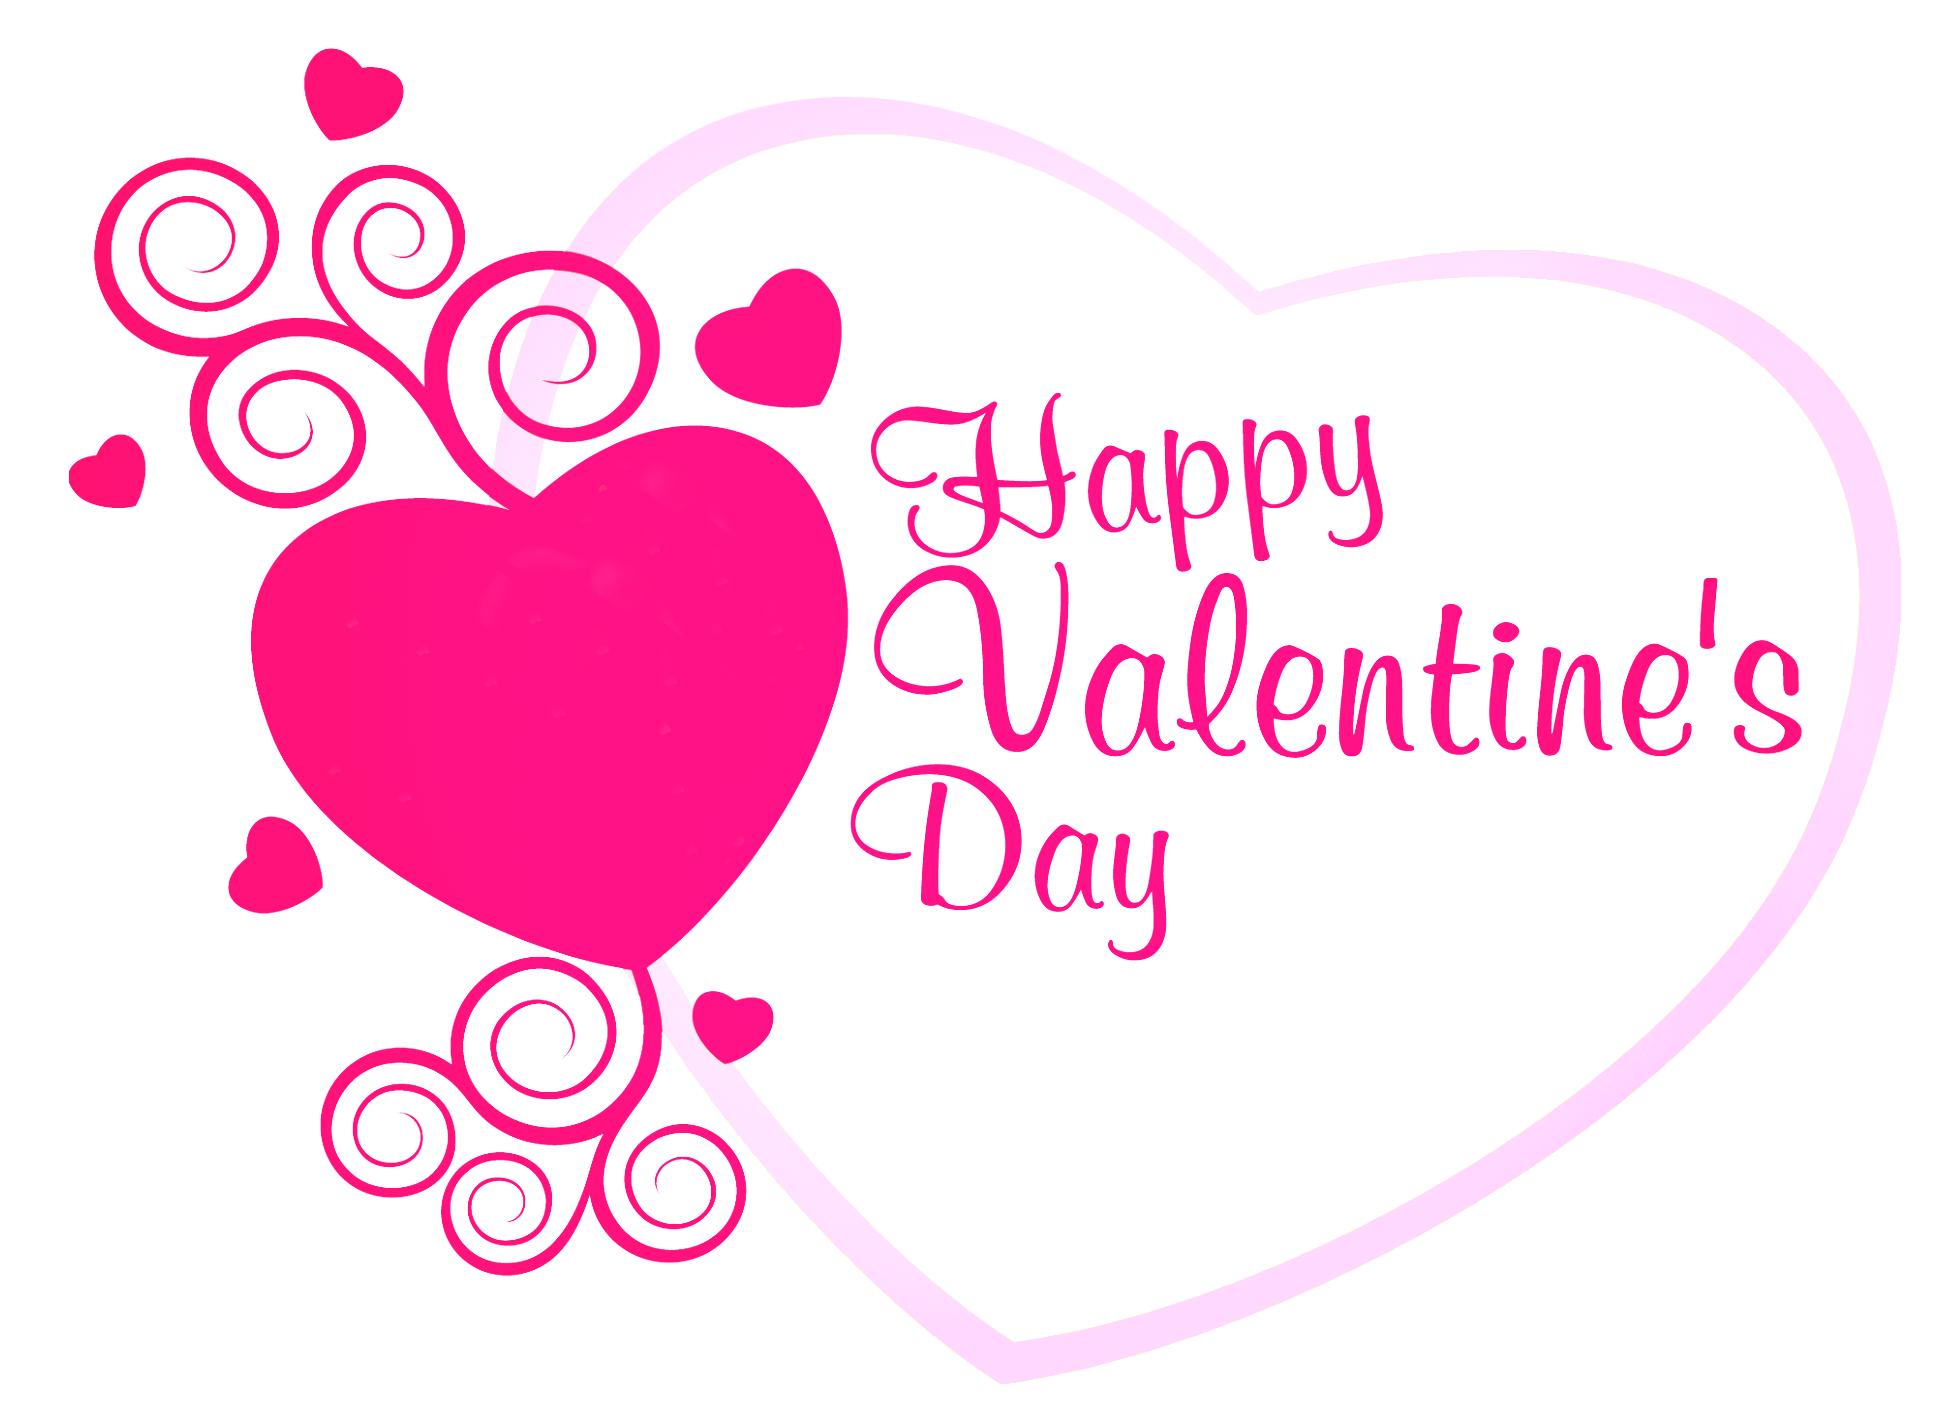 Valentines Day Clipart Images-Valentines Day Clipart Images-16